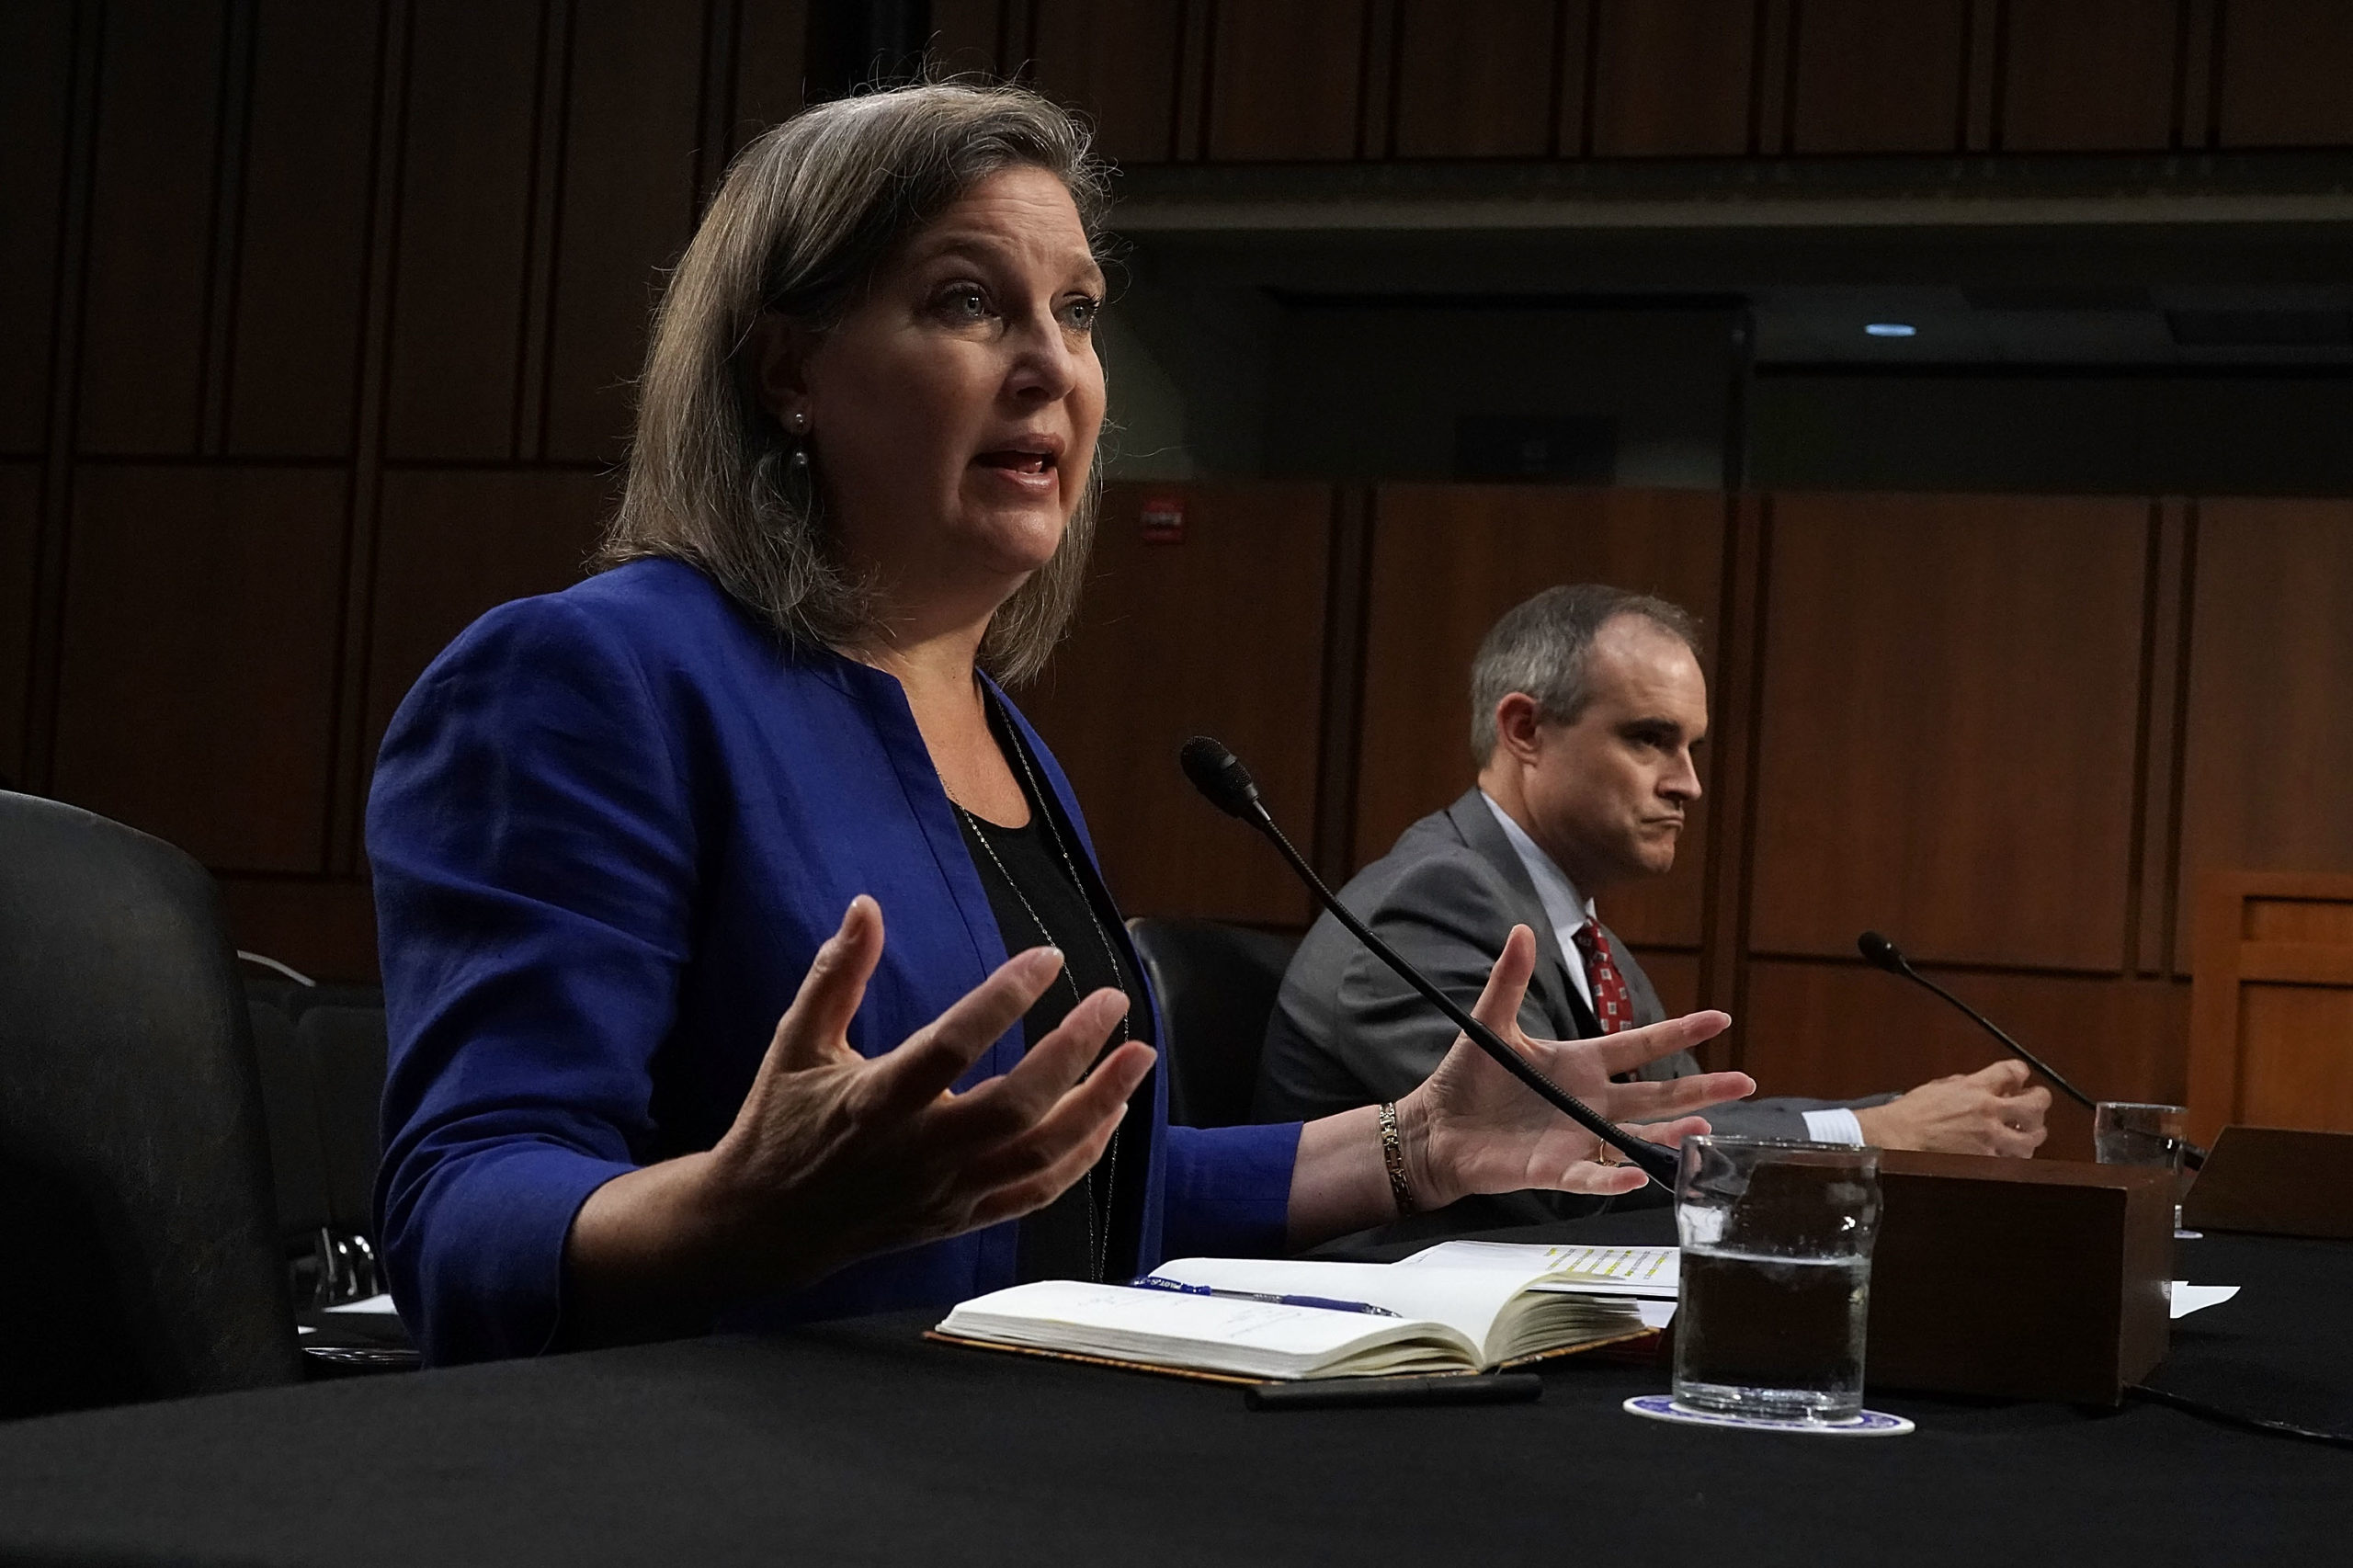 Under Secretary of State for Political Affairs Victoria Nuland testifies during a hearing on June 20, 2018. (Alex Wong/Getty Images)